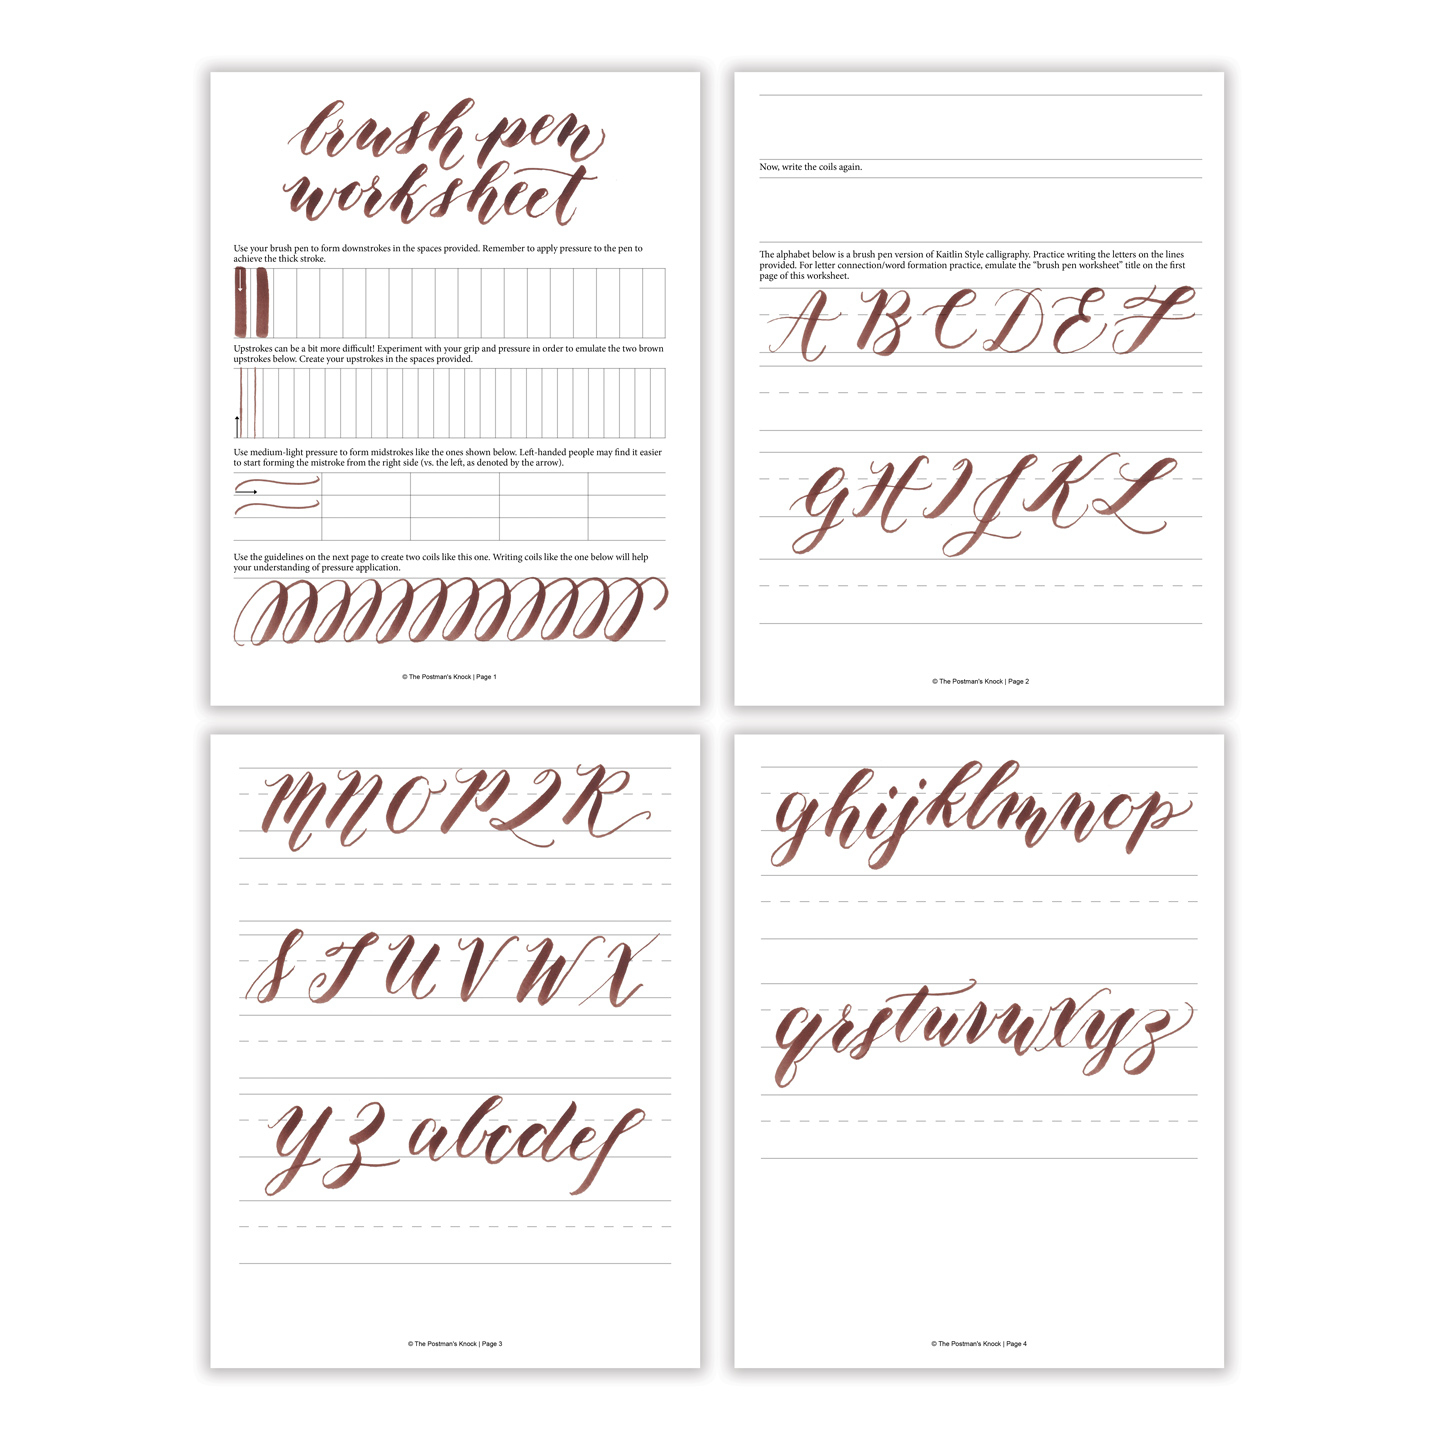 Free Basic Brush Pen Calligraphy Worksheet – The Postman's Knock - Free Printable Calligraphy Worksheets